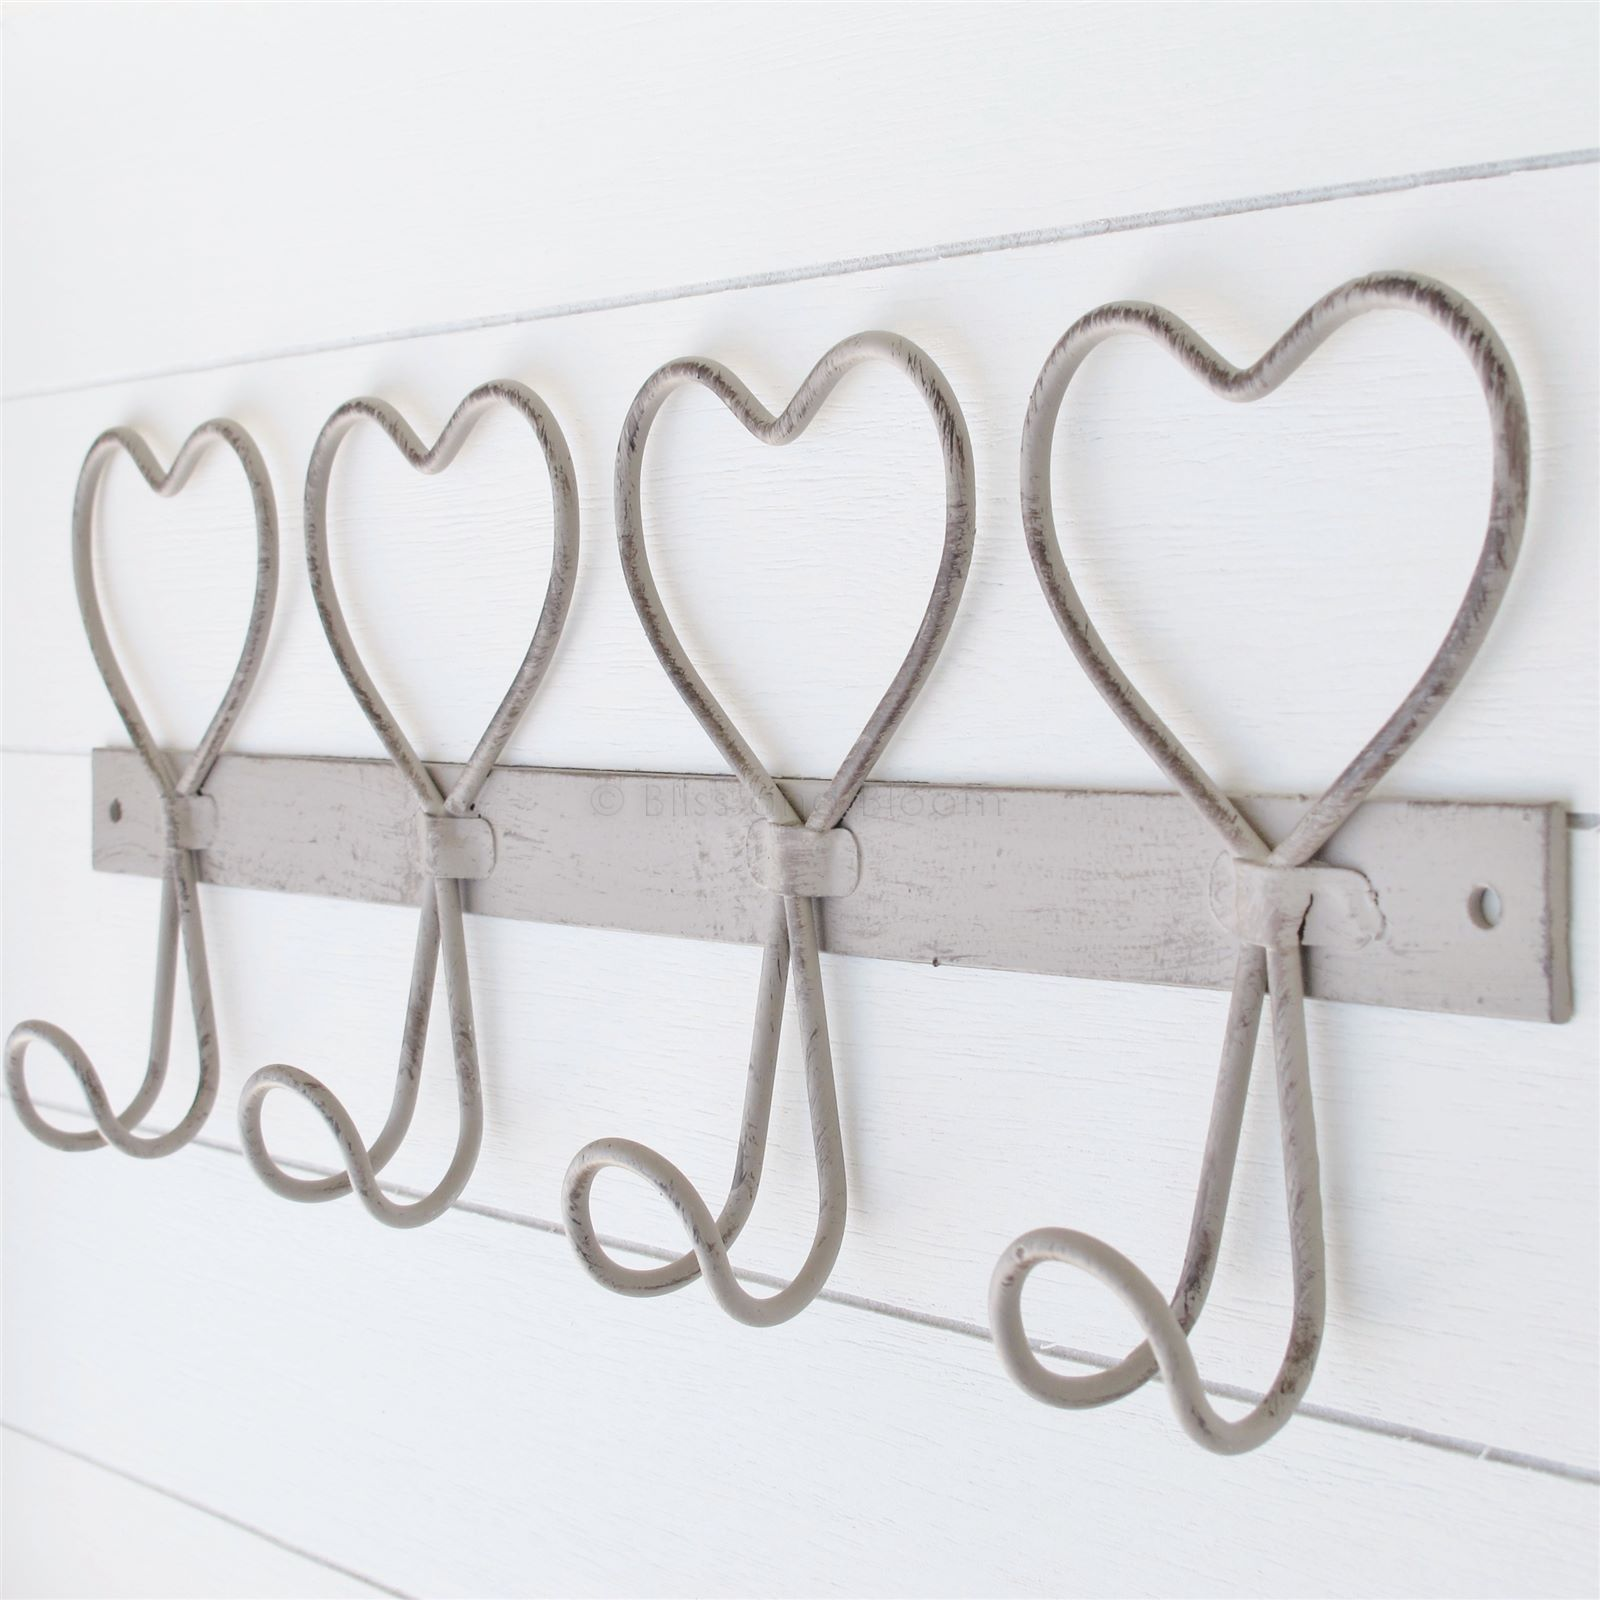 Wire 4 Heart Wall Hook   Bliss and Bloom Ltd